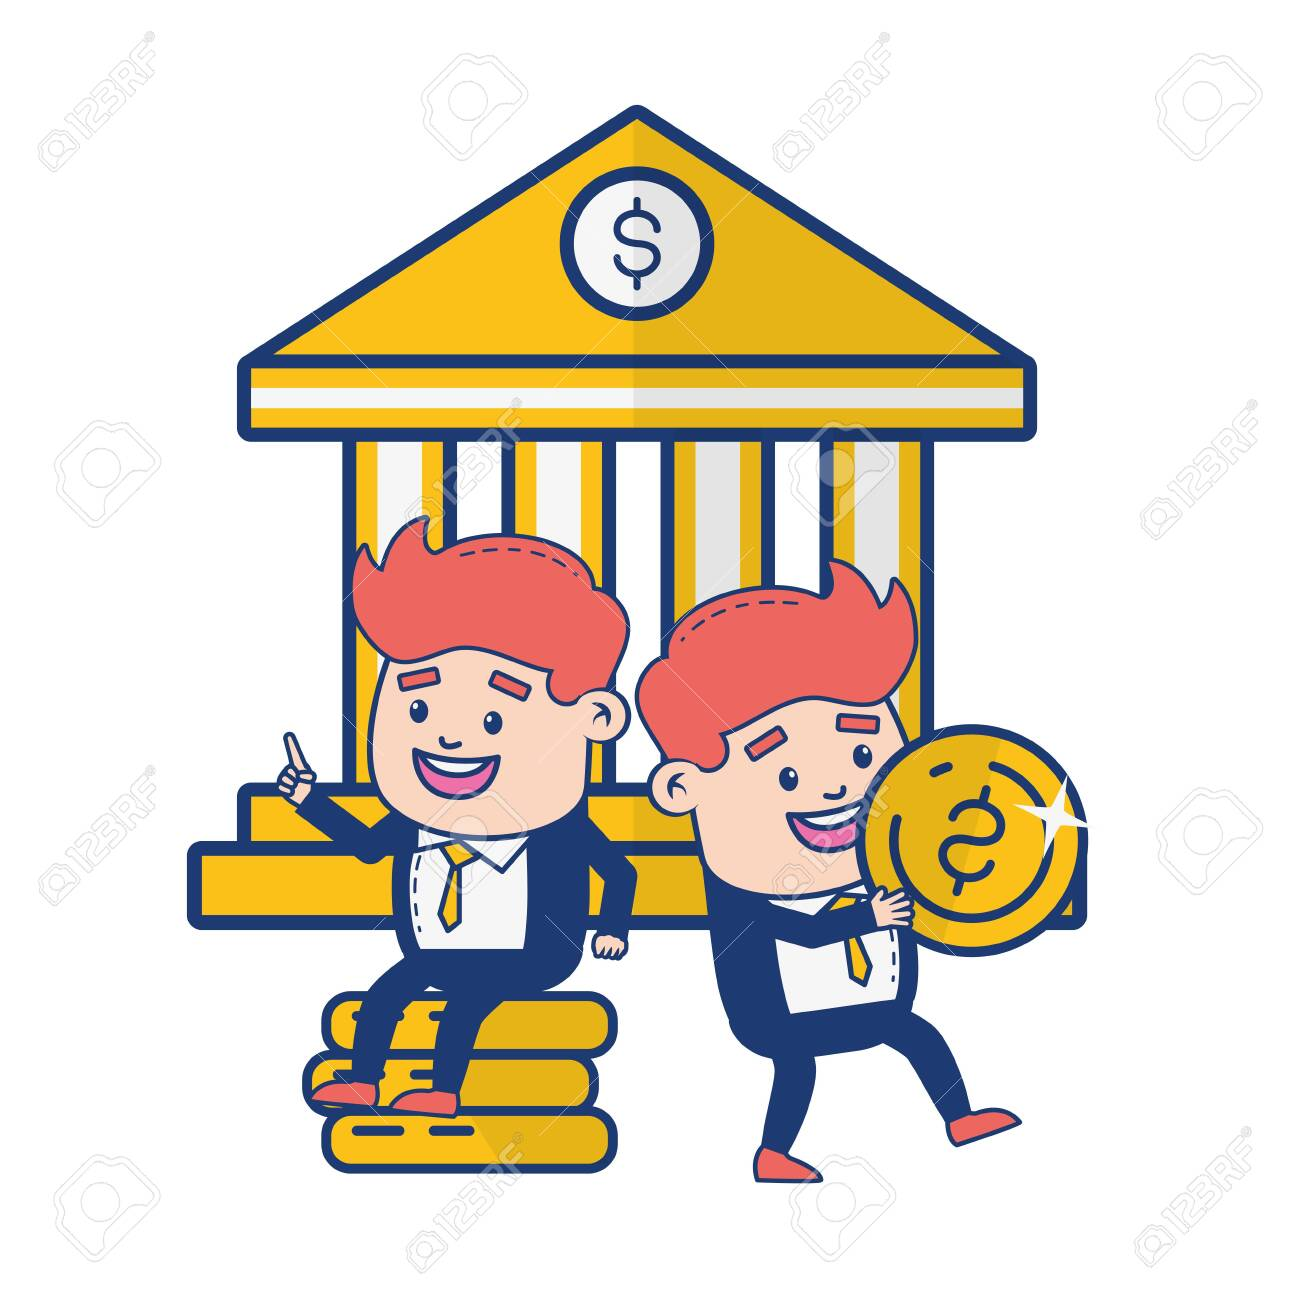 Businessmen Bank Money Online Banking Vector Illustration Royalty Free Cliparts Vectors And Stock Illustration Image 129477092